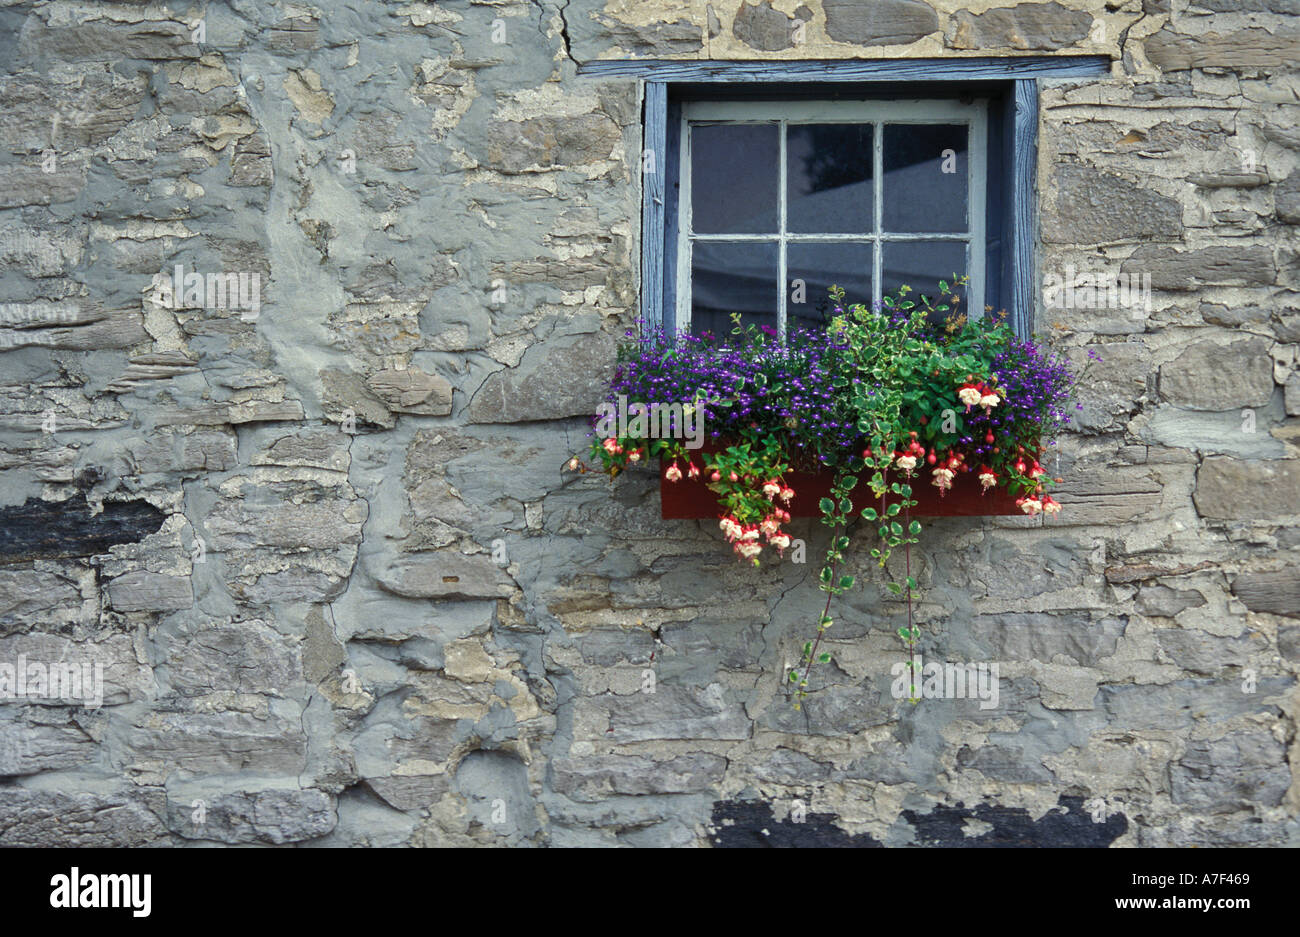 Shutter Colors For Brick House Window Box With Flowers And Vines Beneath An Old Painted